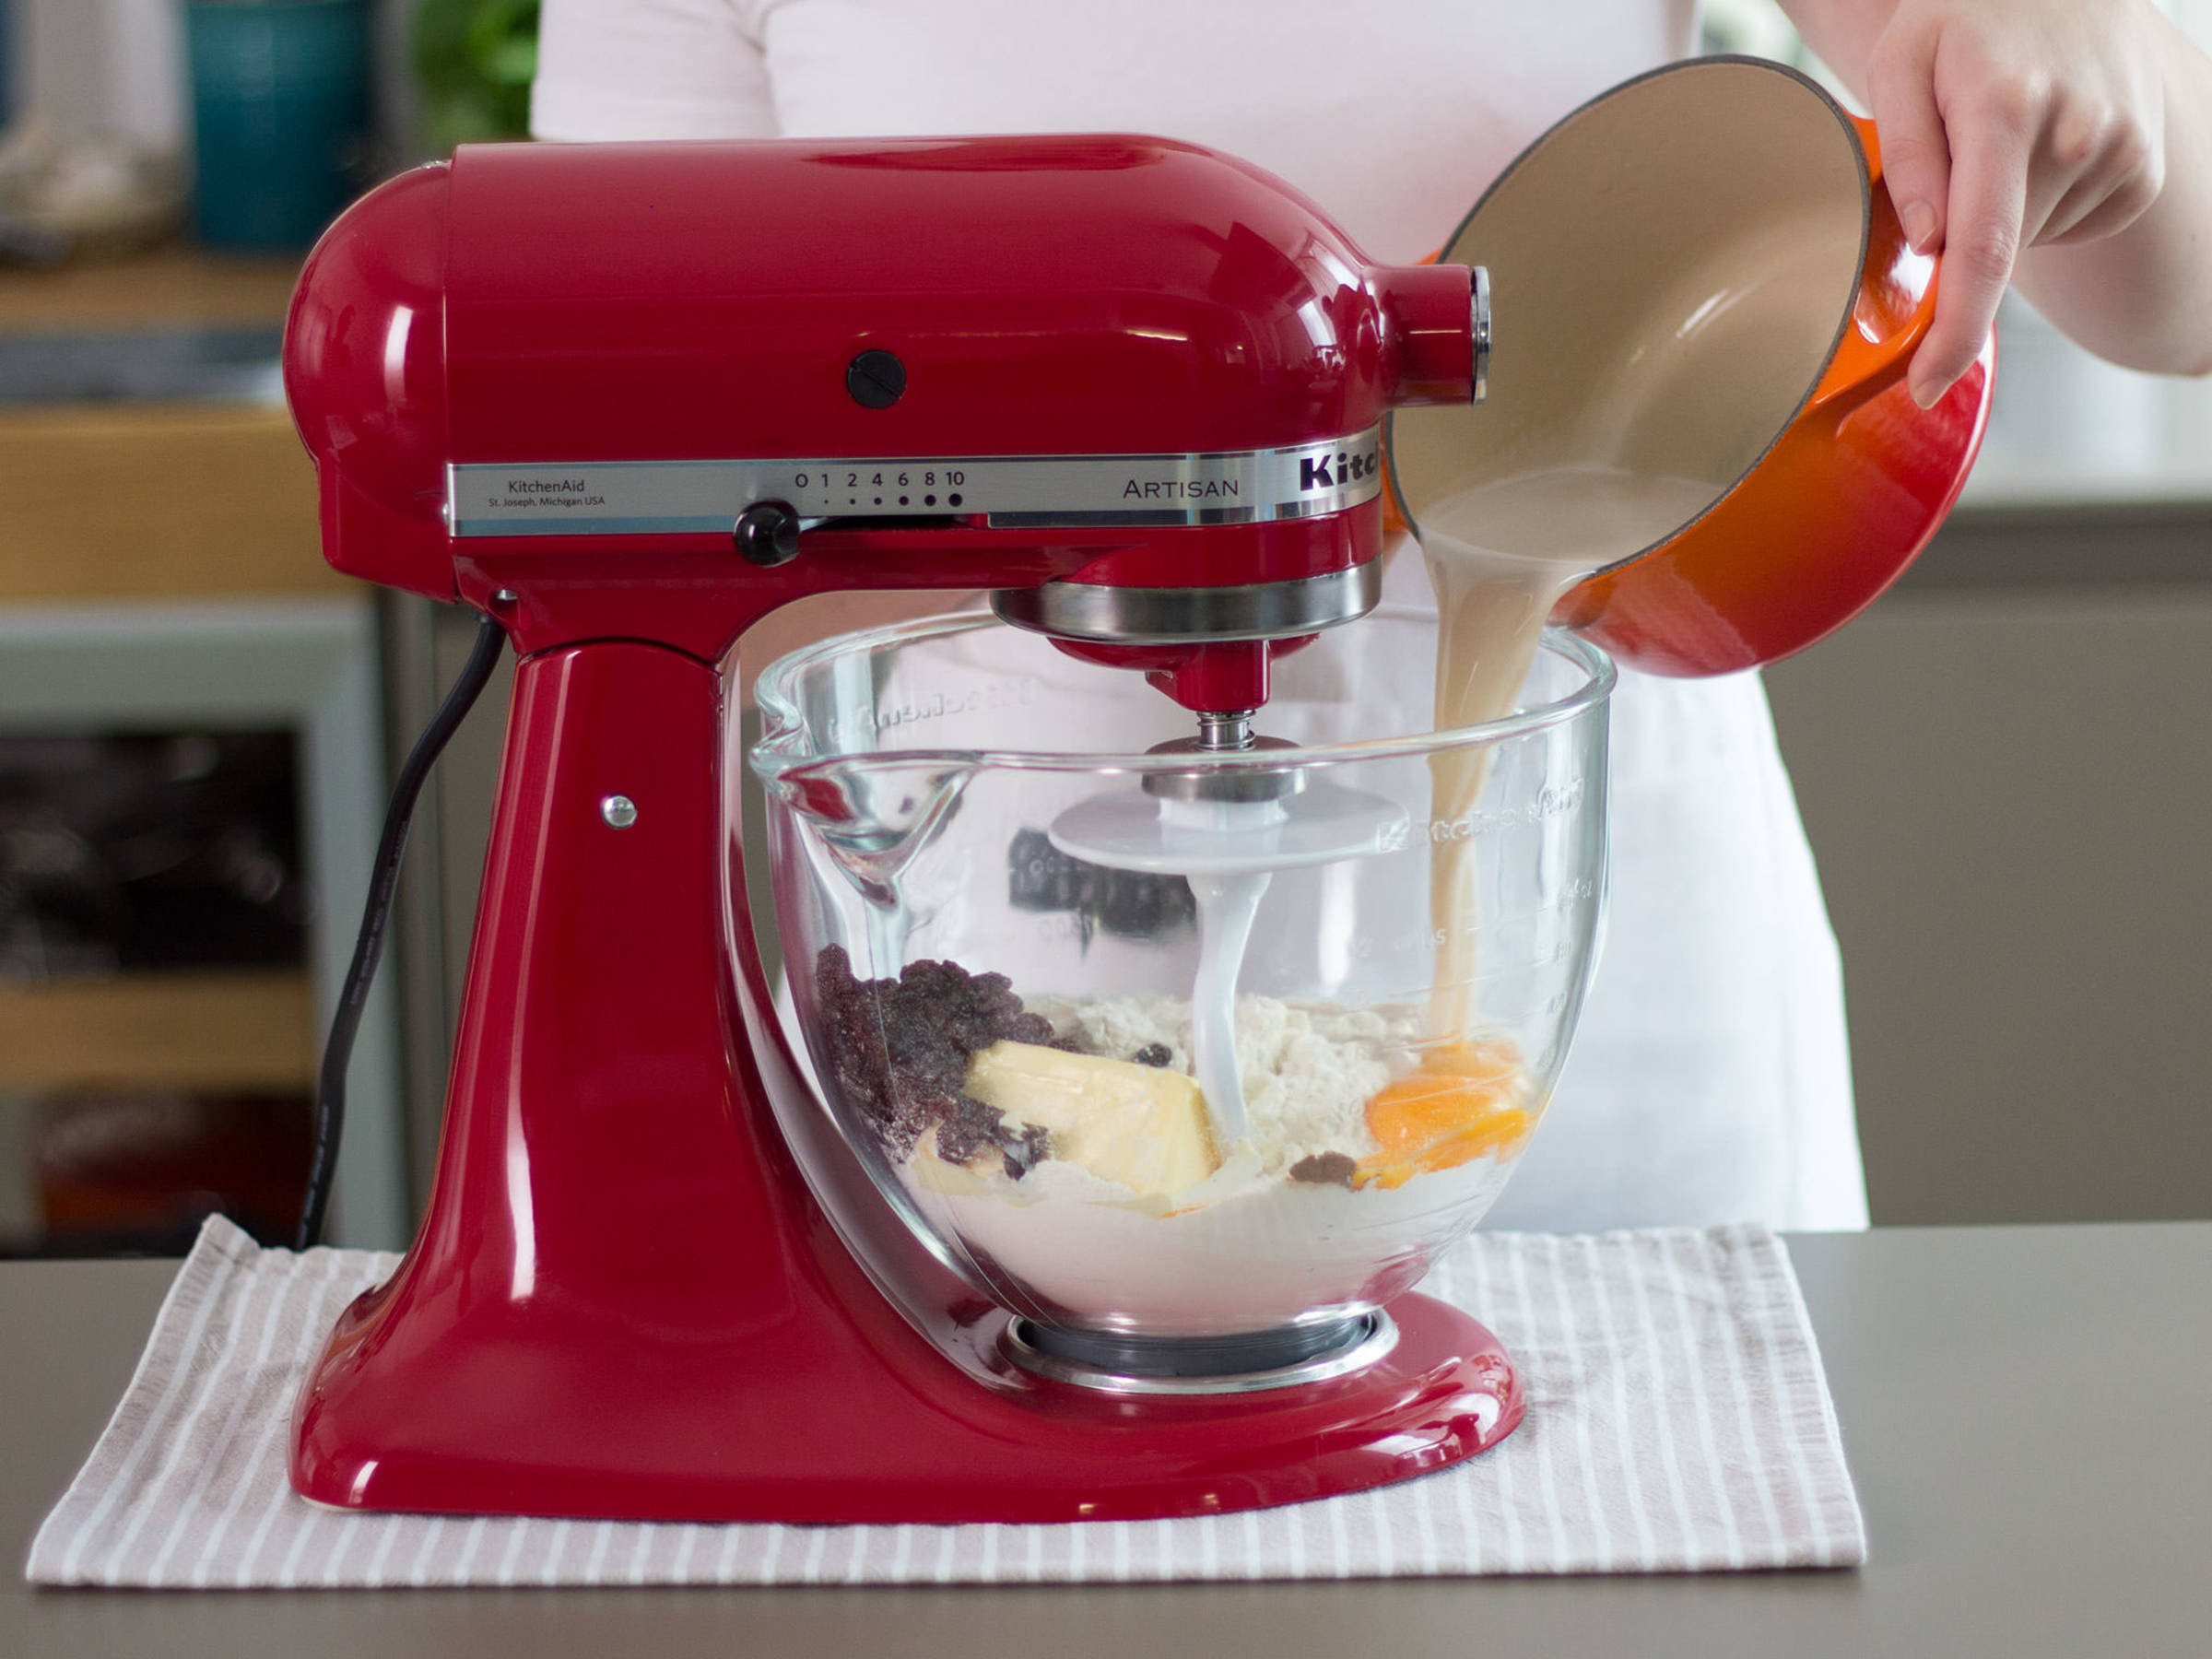 In a stand mixer, beat together some of the flour, butter, raisins, egg yolks, cinnamon, and milk mixture for approx. 3 – 5 min. Cover and allow to rest in a warm place for approx. 30 – 35 min.